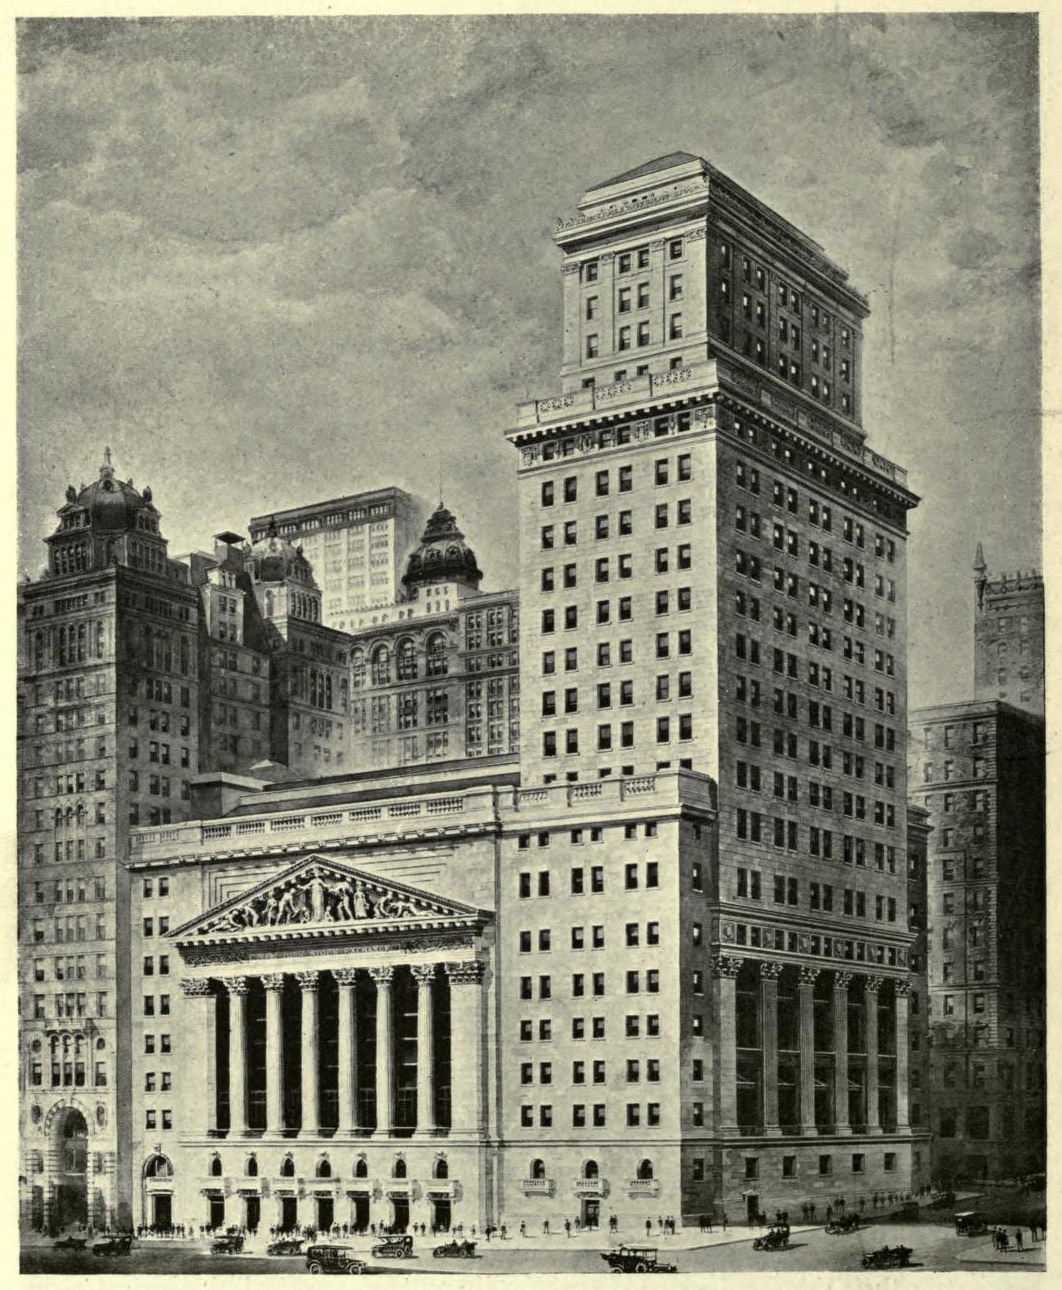 A projected addition to the New York Stock Exchange, New York City